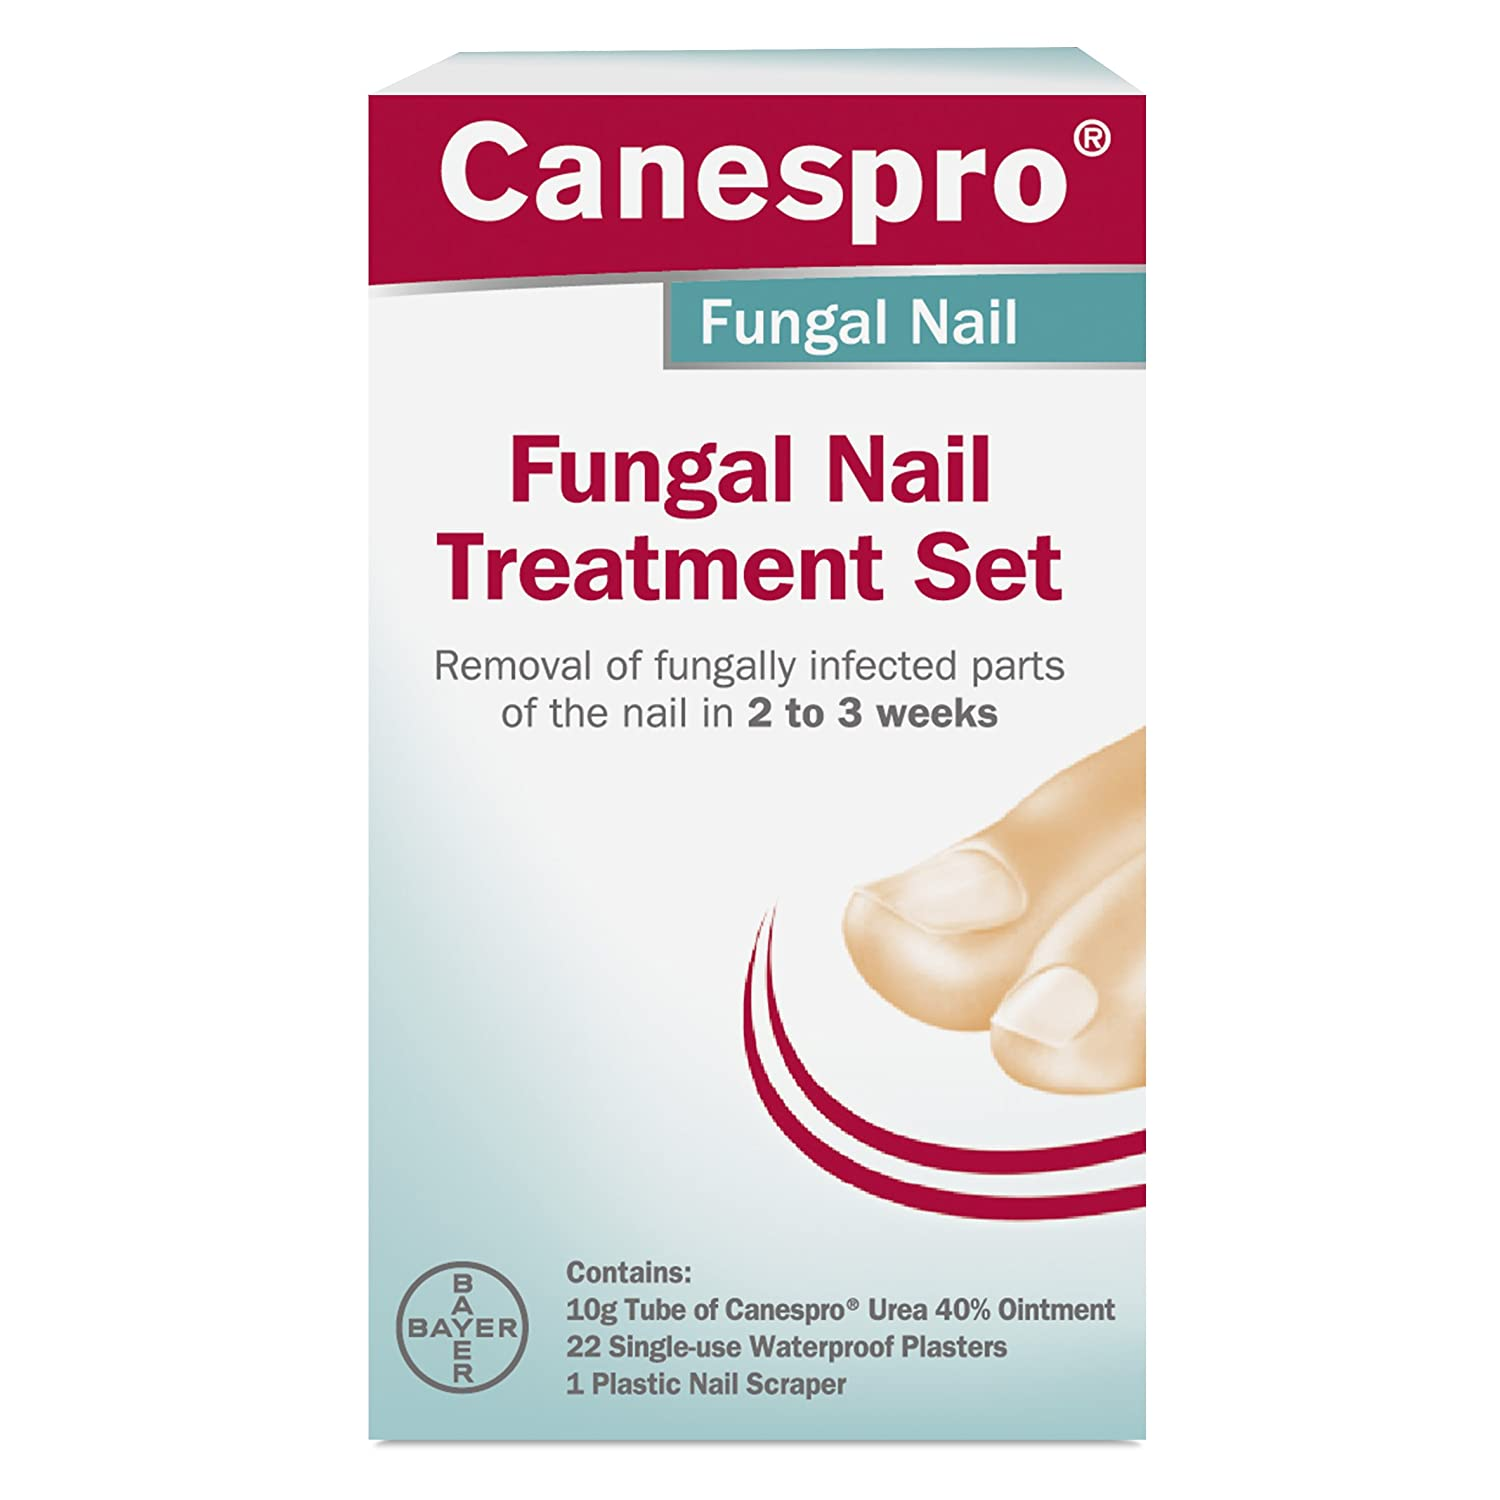 Canespro Fungal Nail Treatment Set 80807910